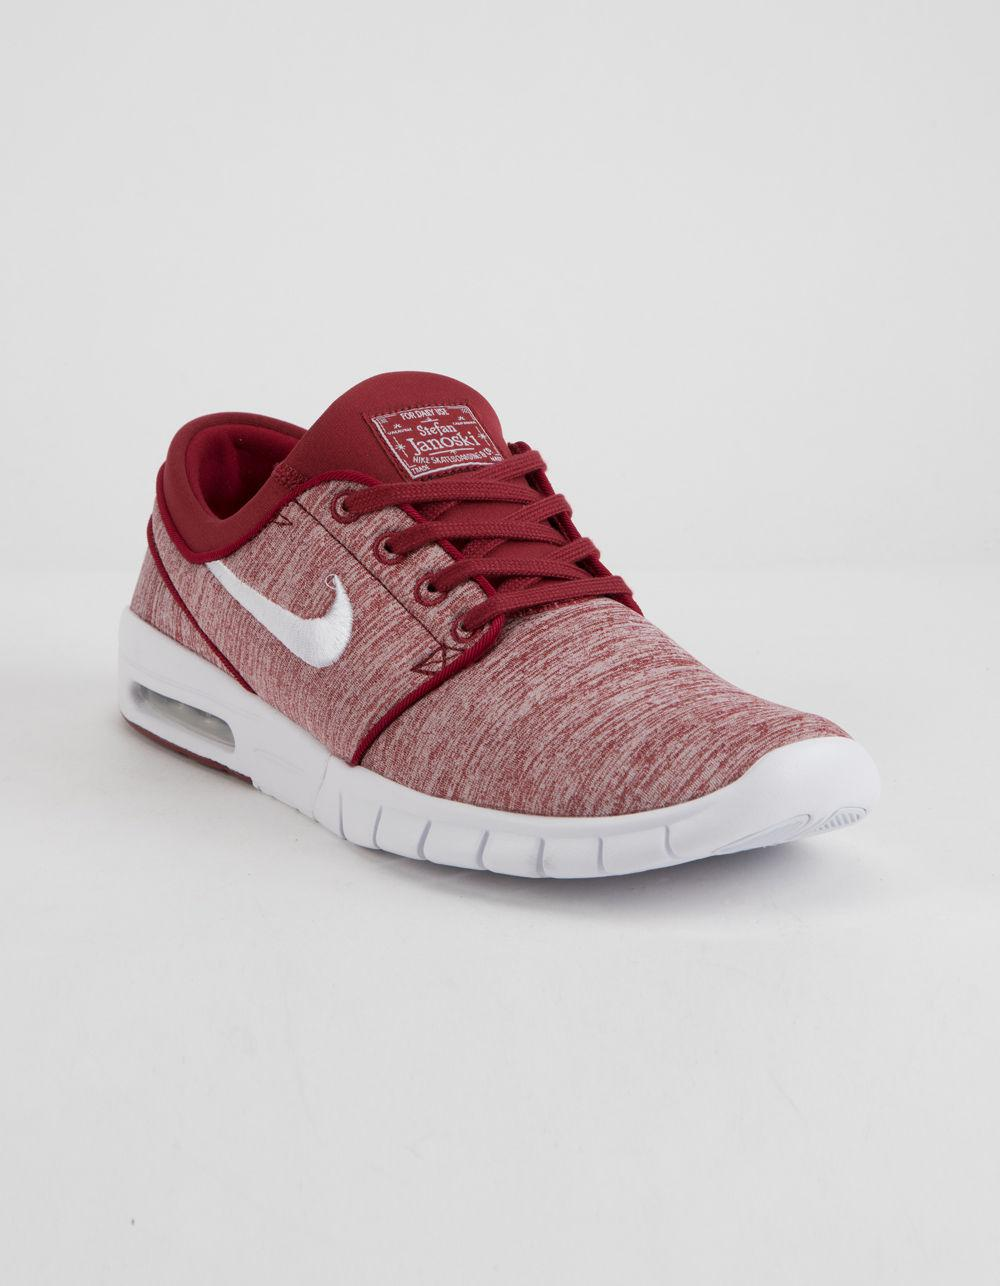 091334a920 Nike Stefan Janoski Max Red Crush & White Shoes in Red - Lyst